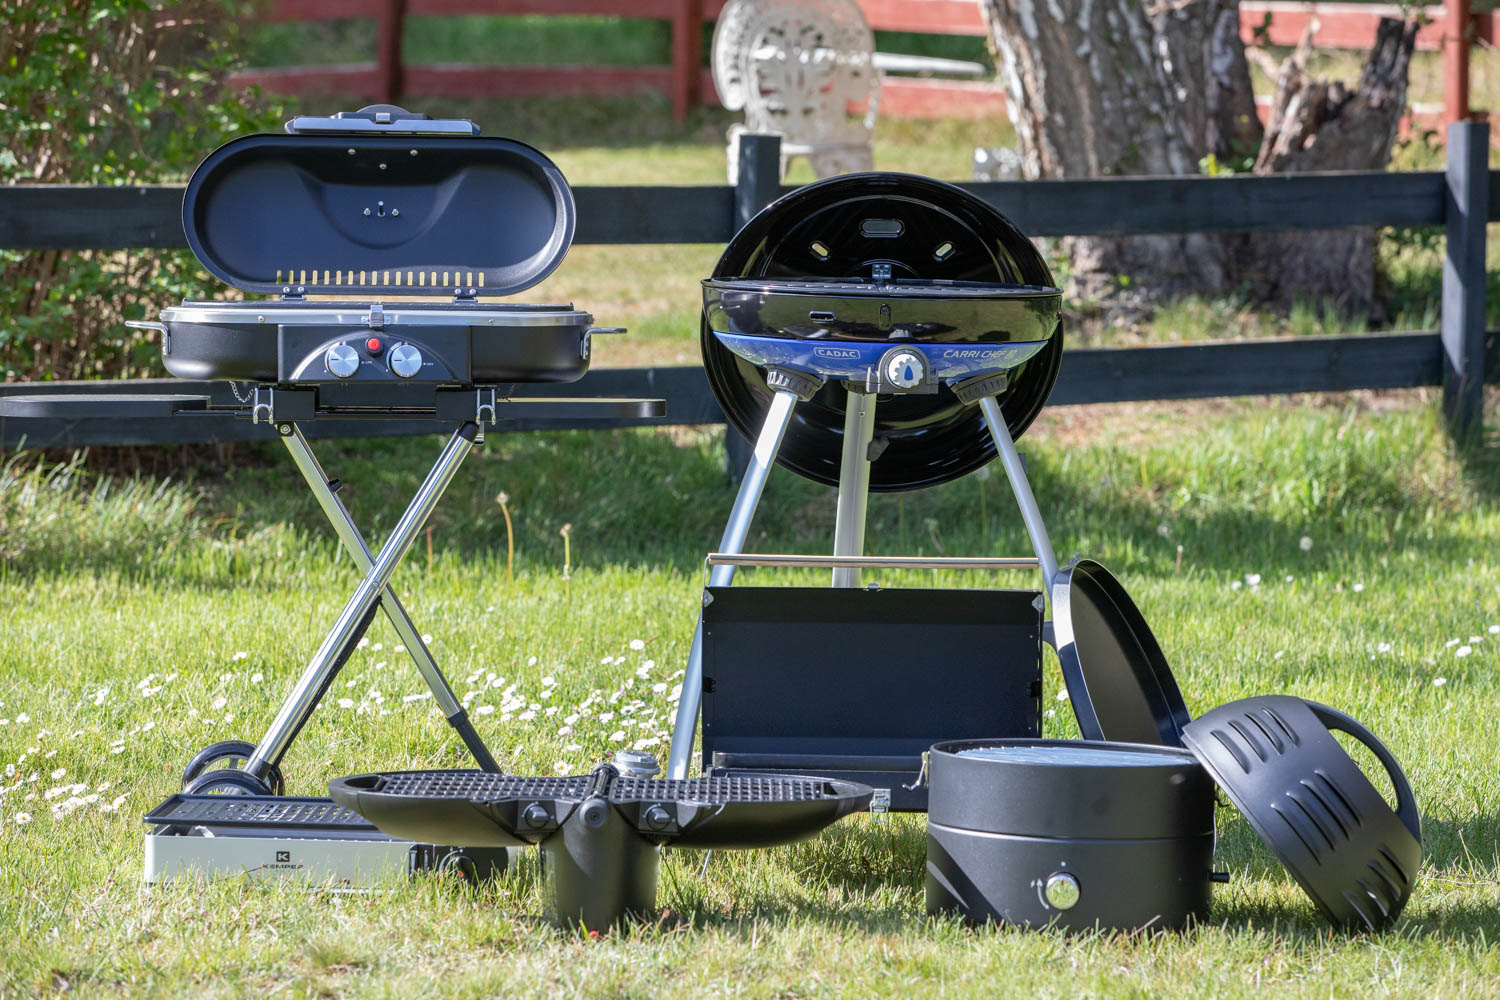 LPG Barbecuing grills making a test